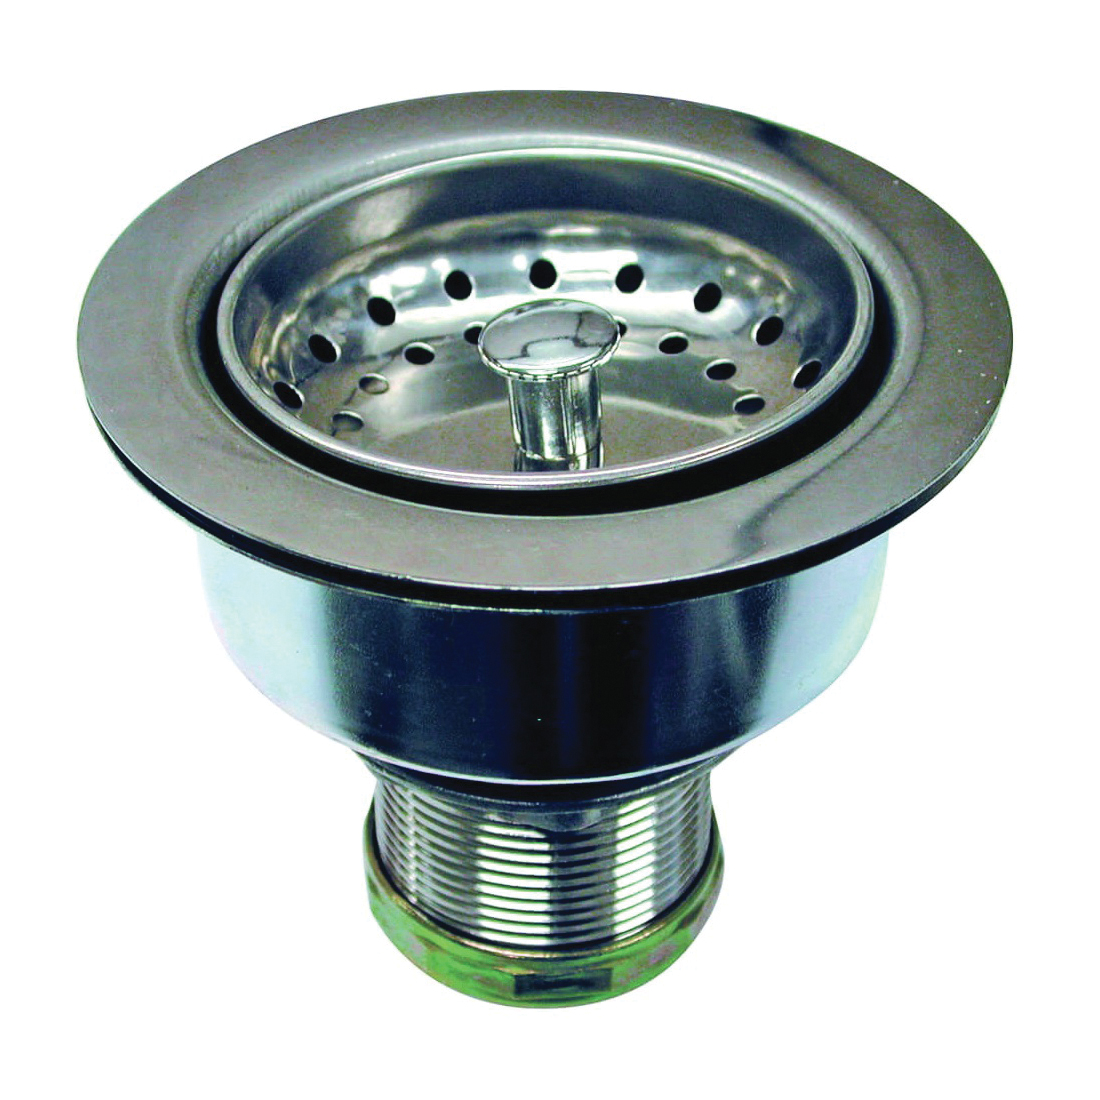 Picture of Danco 86803 Basket Strainer Assembly, 3-1/2 in Dia, Stainless Steel, Chrome, For: 3-1/4 x 4 in Opening Sink